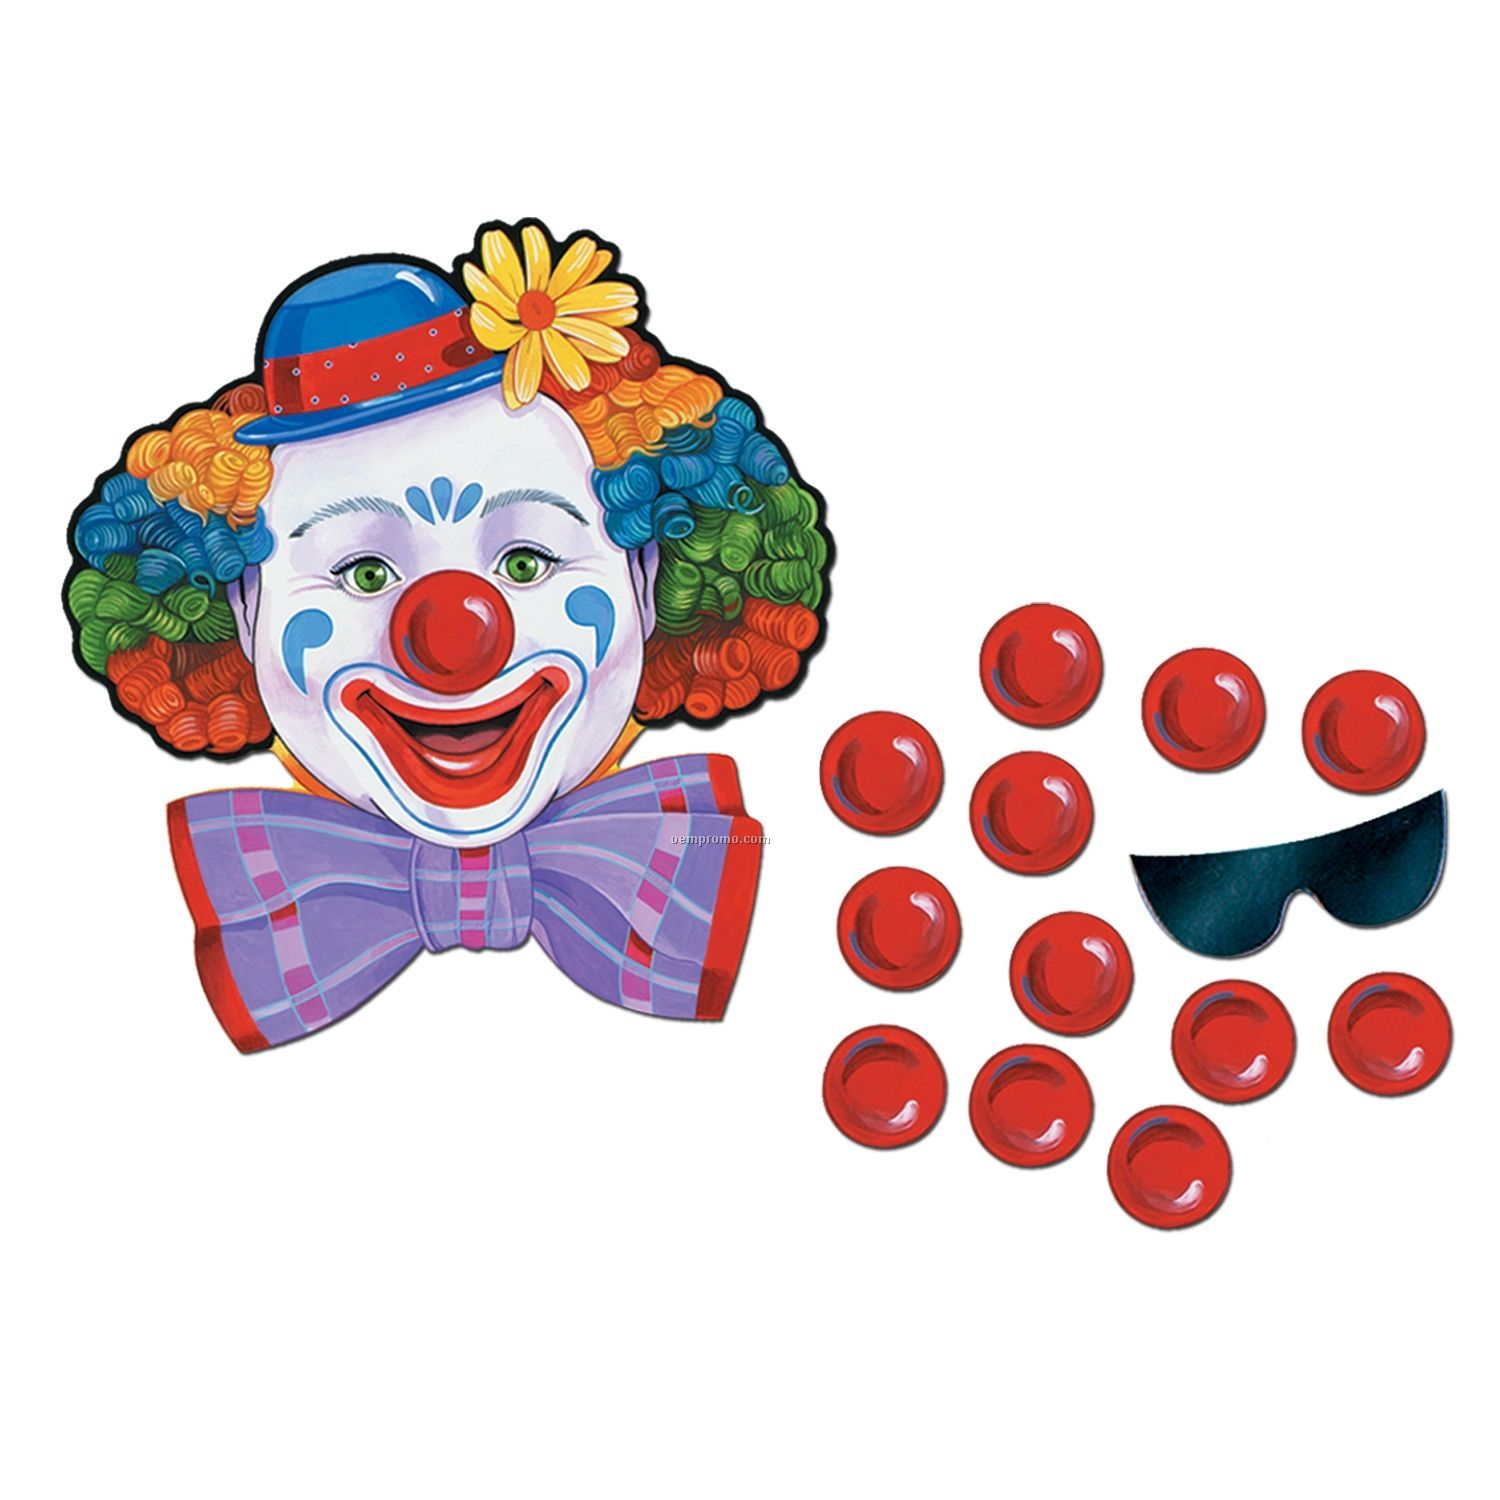 Joker clipart indian Clipart Clip Circus Game Download